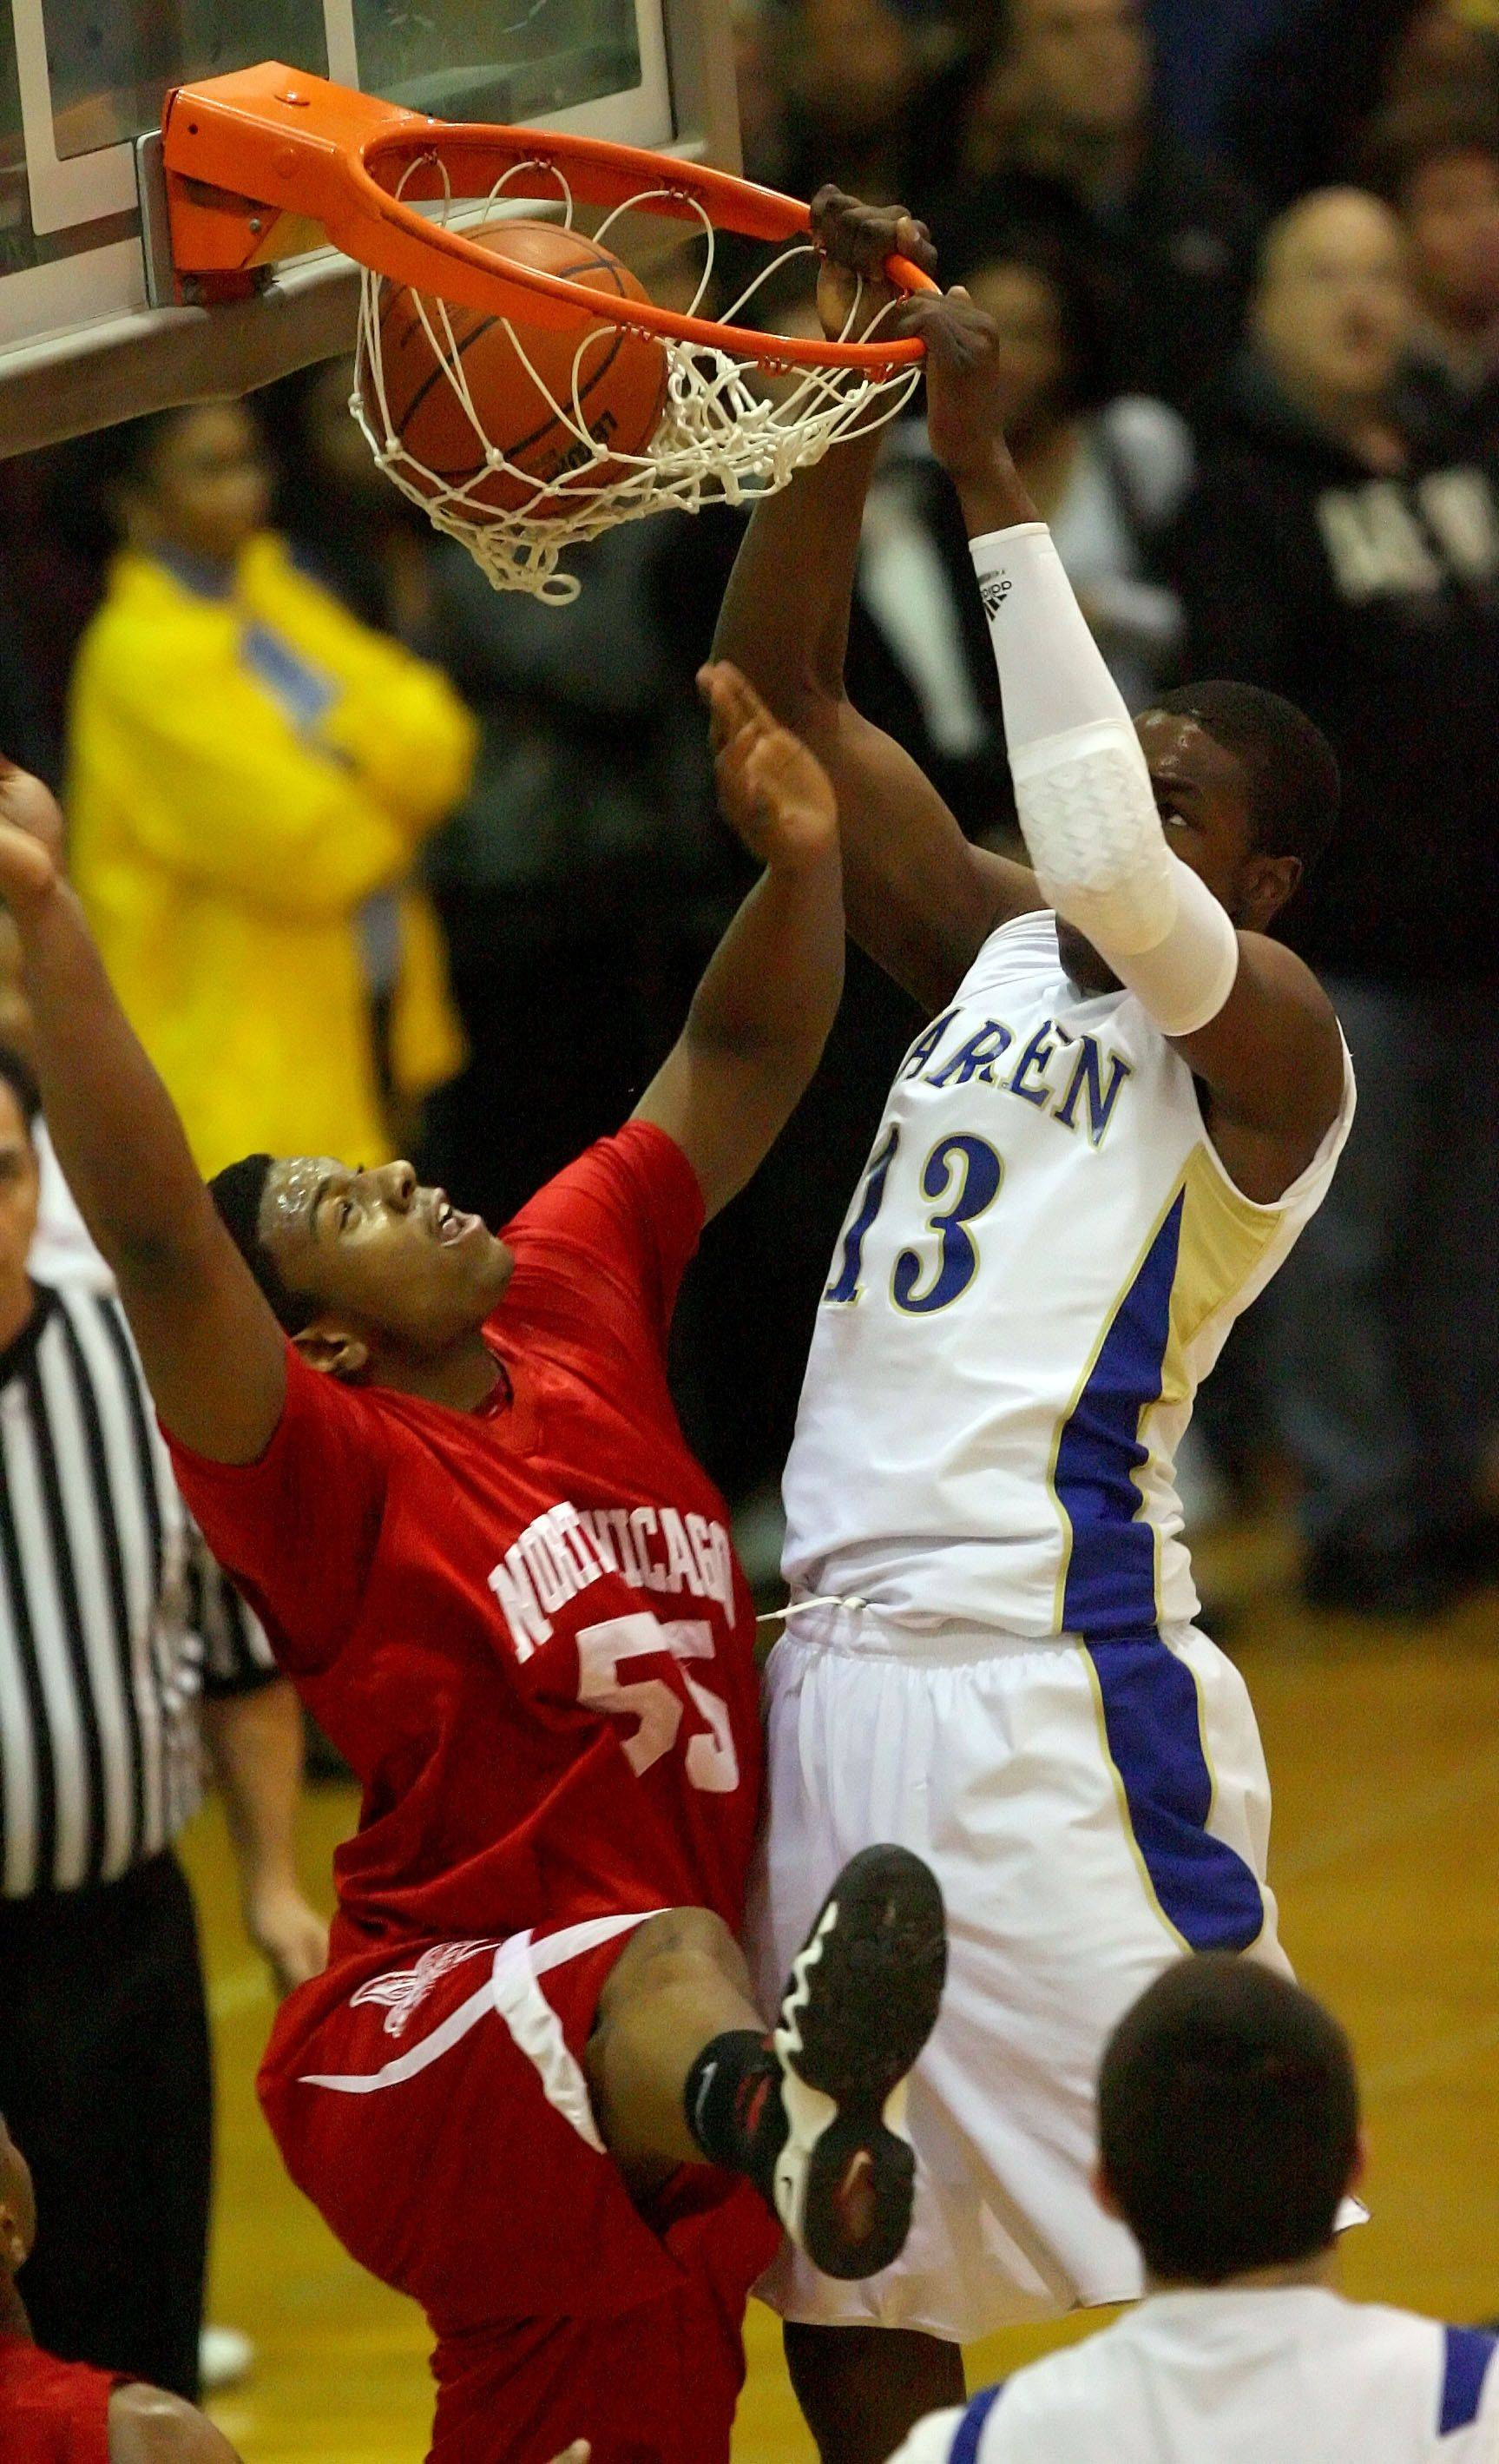 Warren's Darius Paul dunks over North Chicago's Jaylin Linson during the NSC title game Wednesday night in Gurnee.